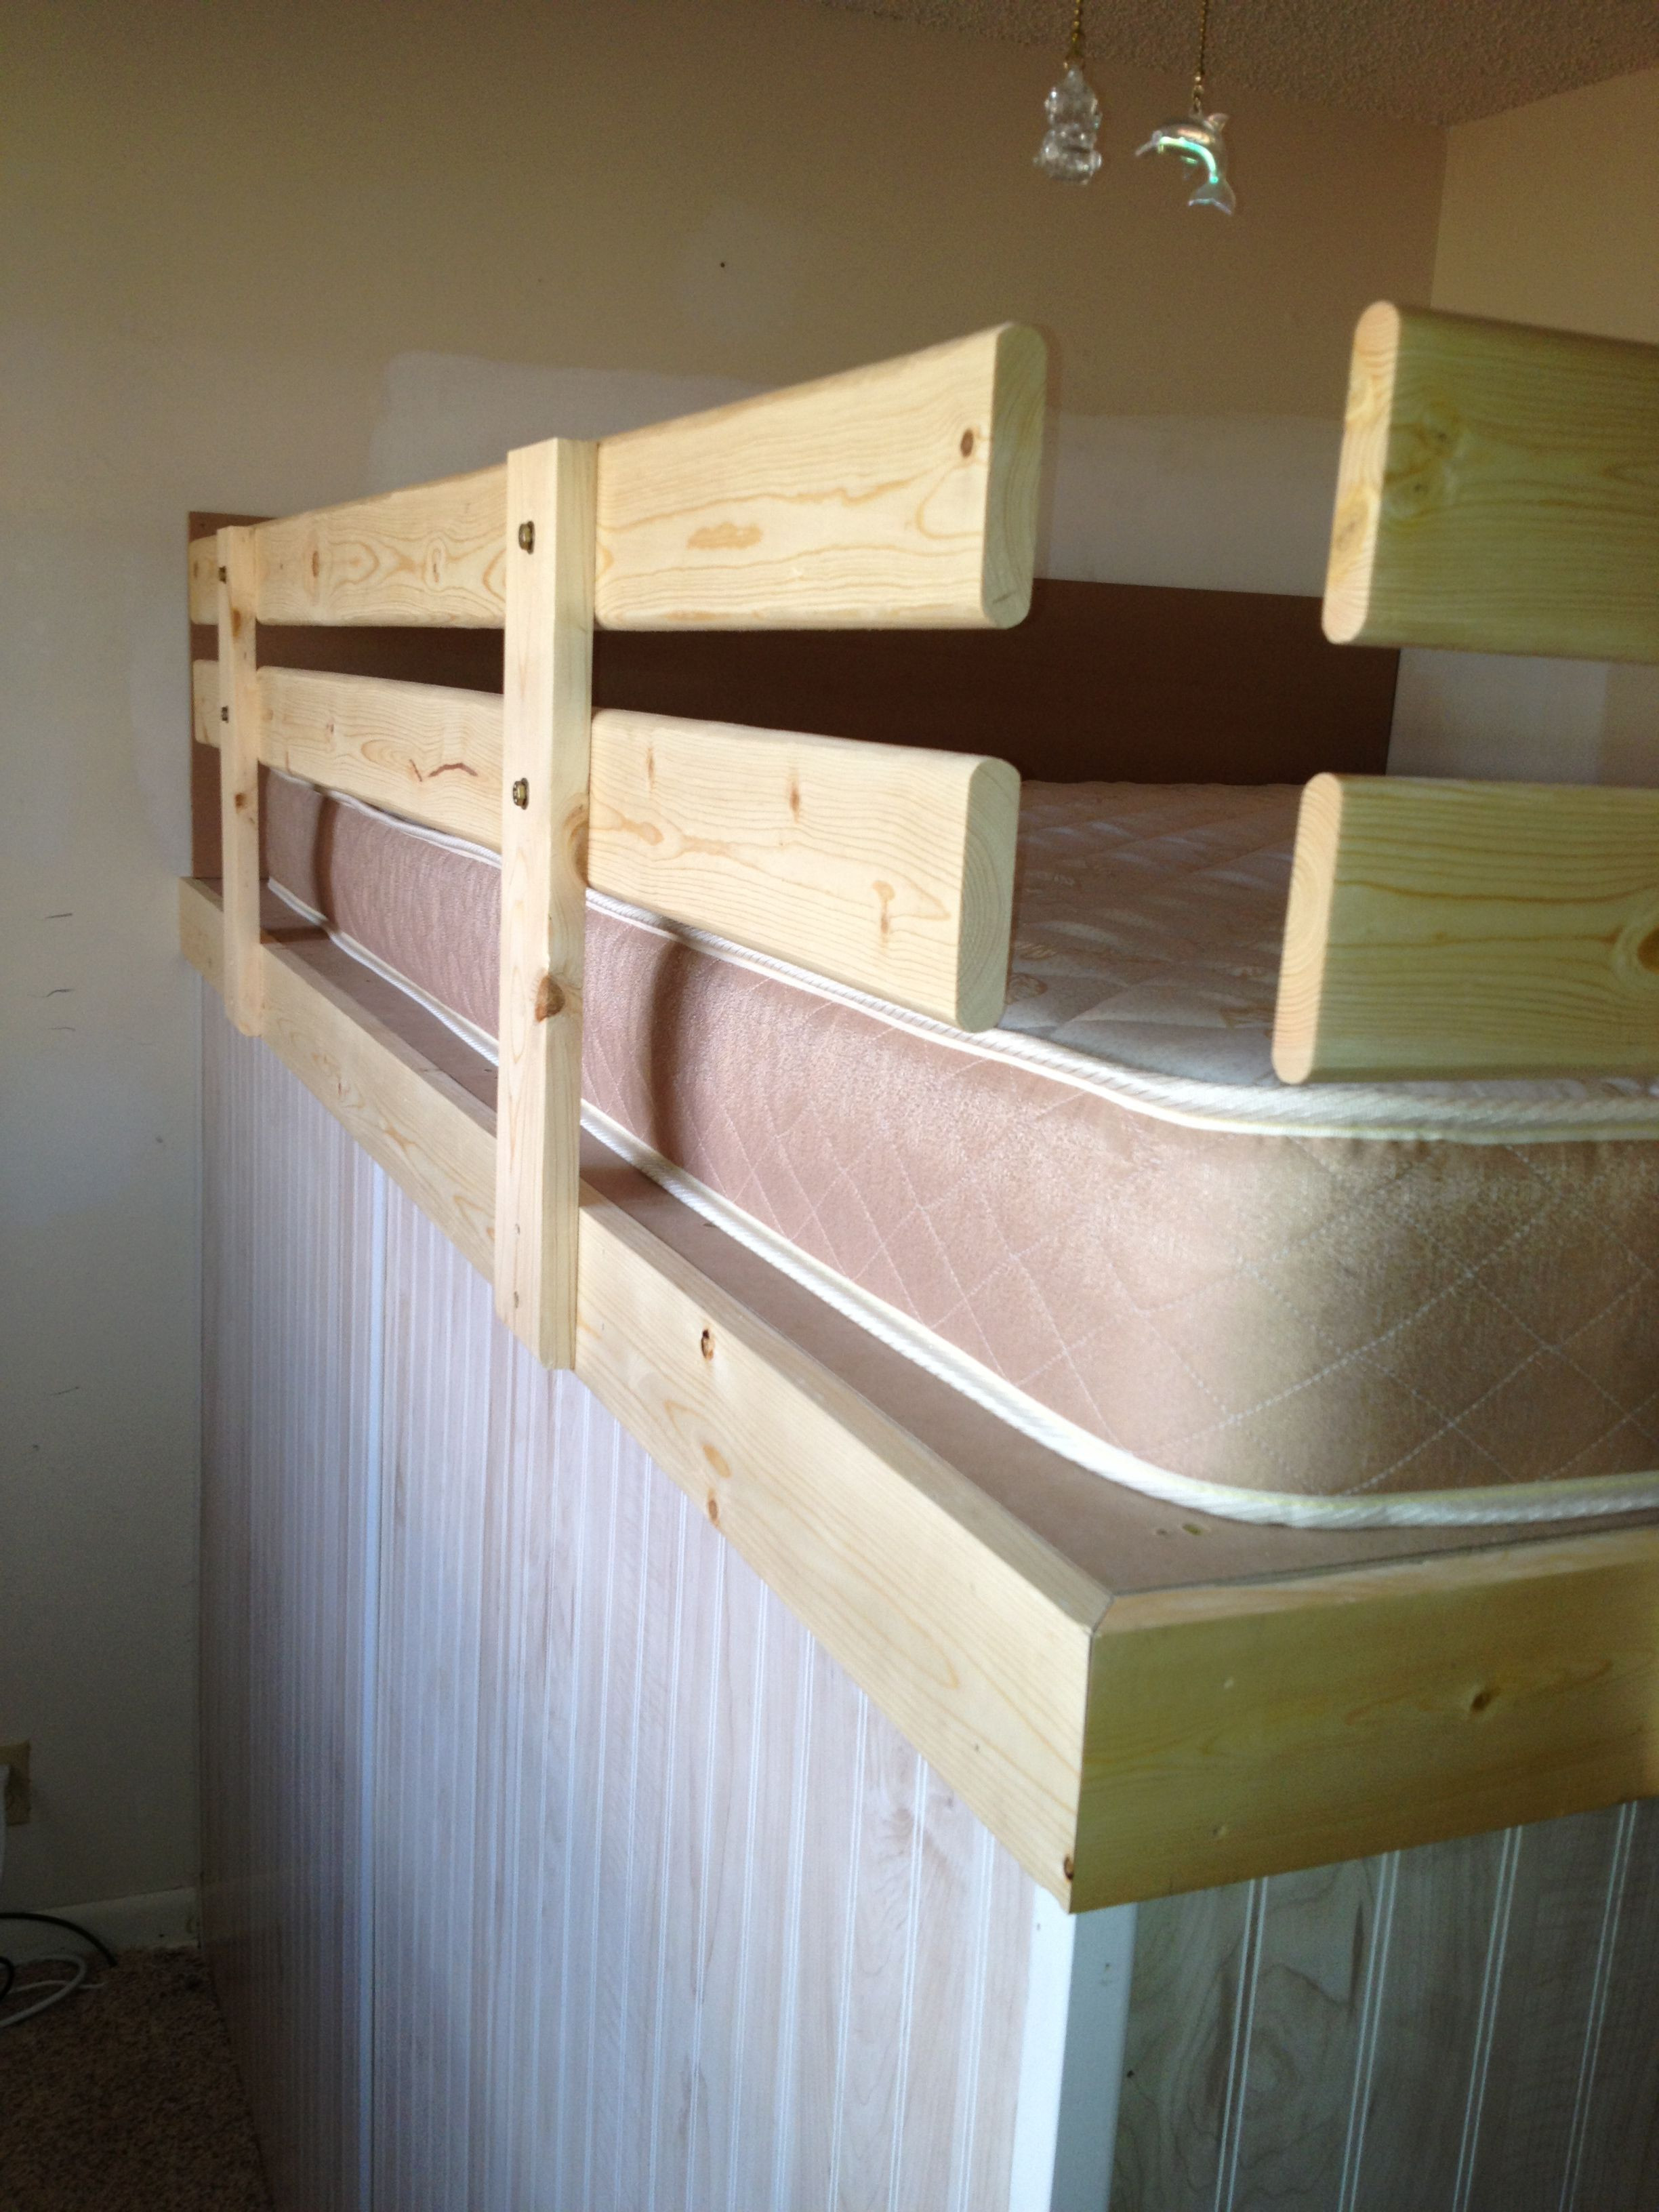 Best ideas about DIY Bed Rails . Save or Pin Safety rails for loft bed grodconstruction diy Now.